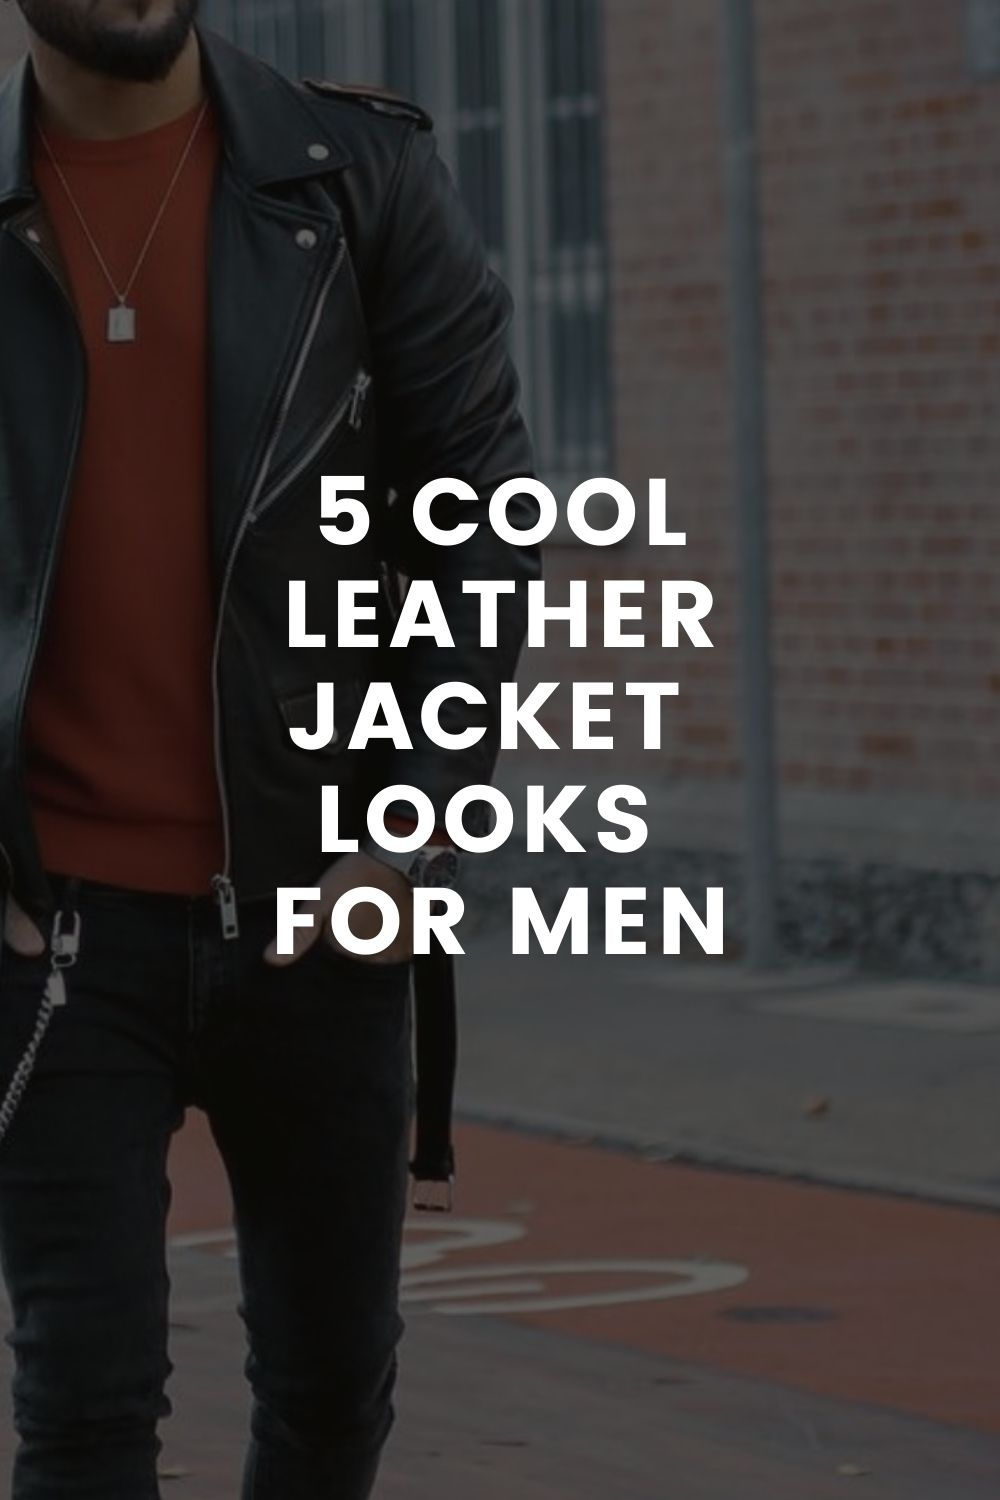 Leather jacket looks for men